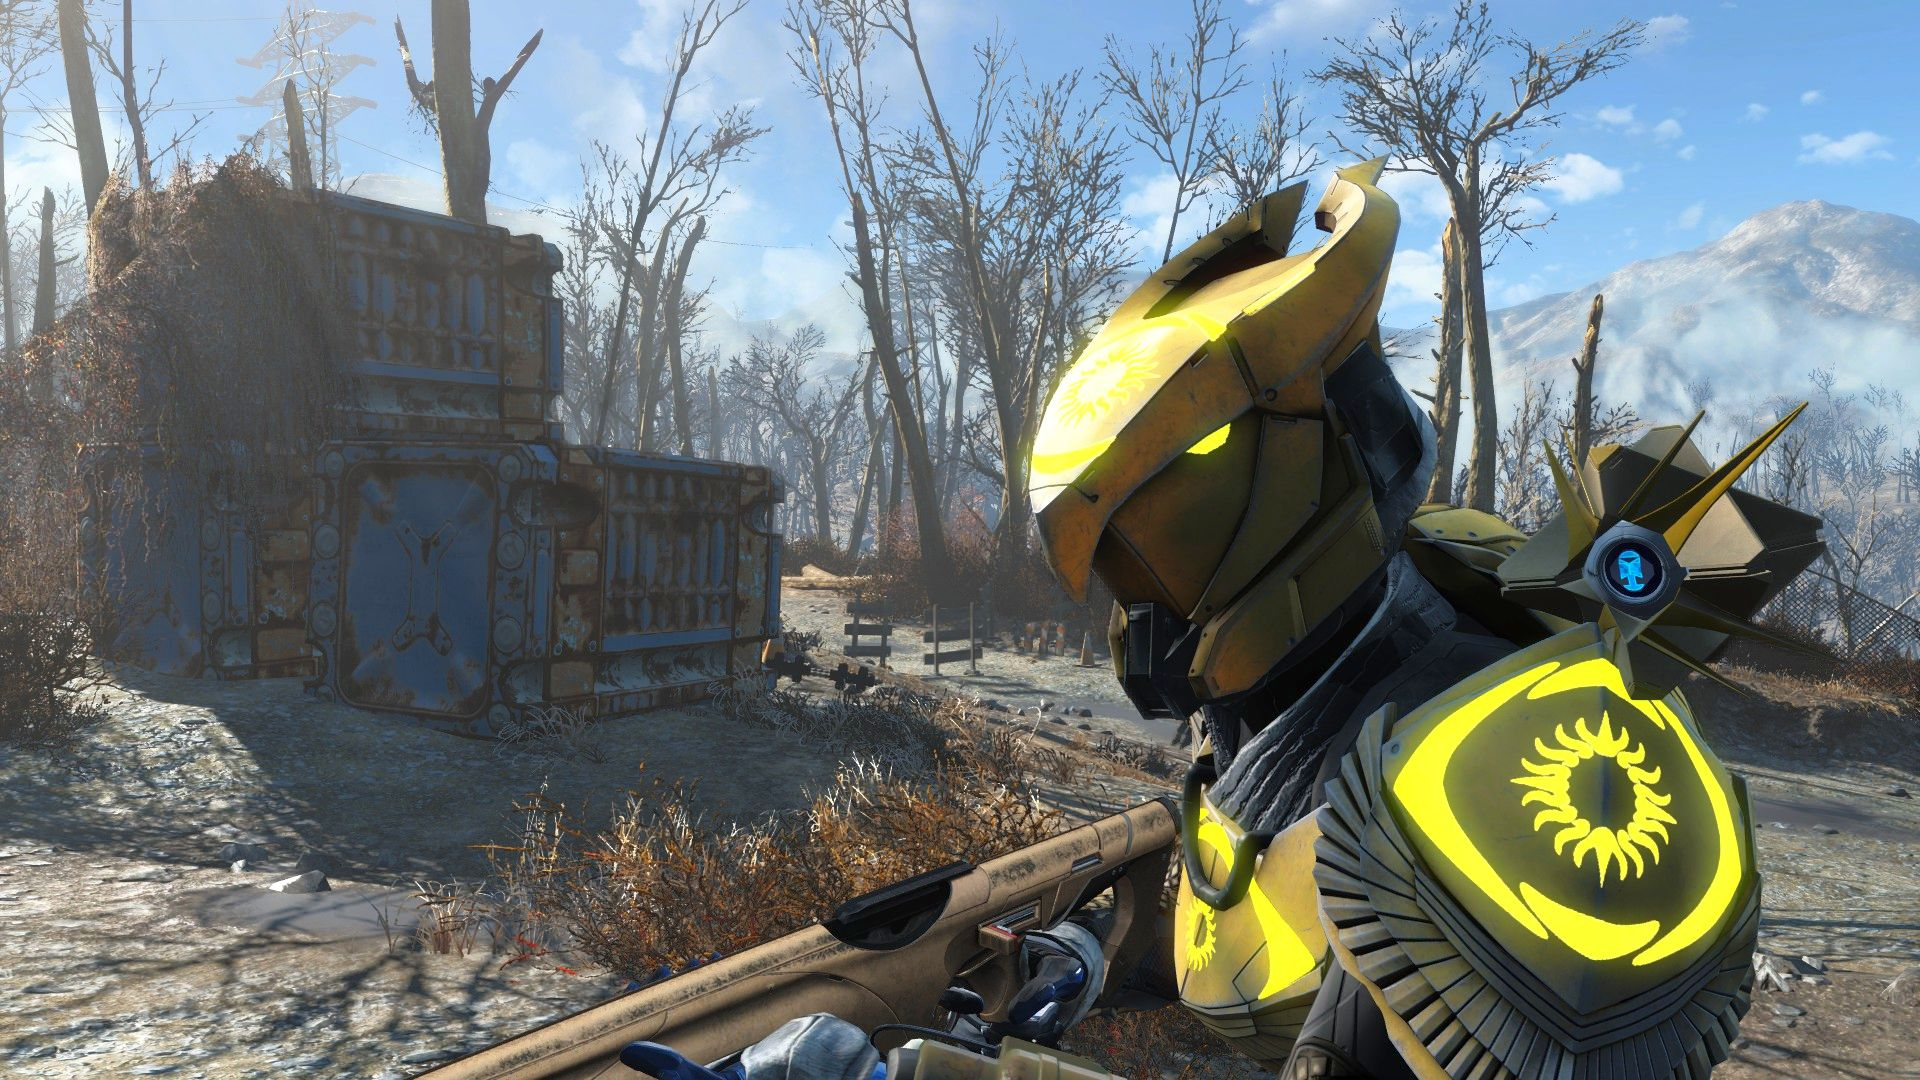 This Fallout 4 mod gives you a Destiny 2-style ghost